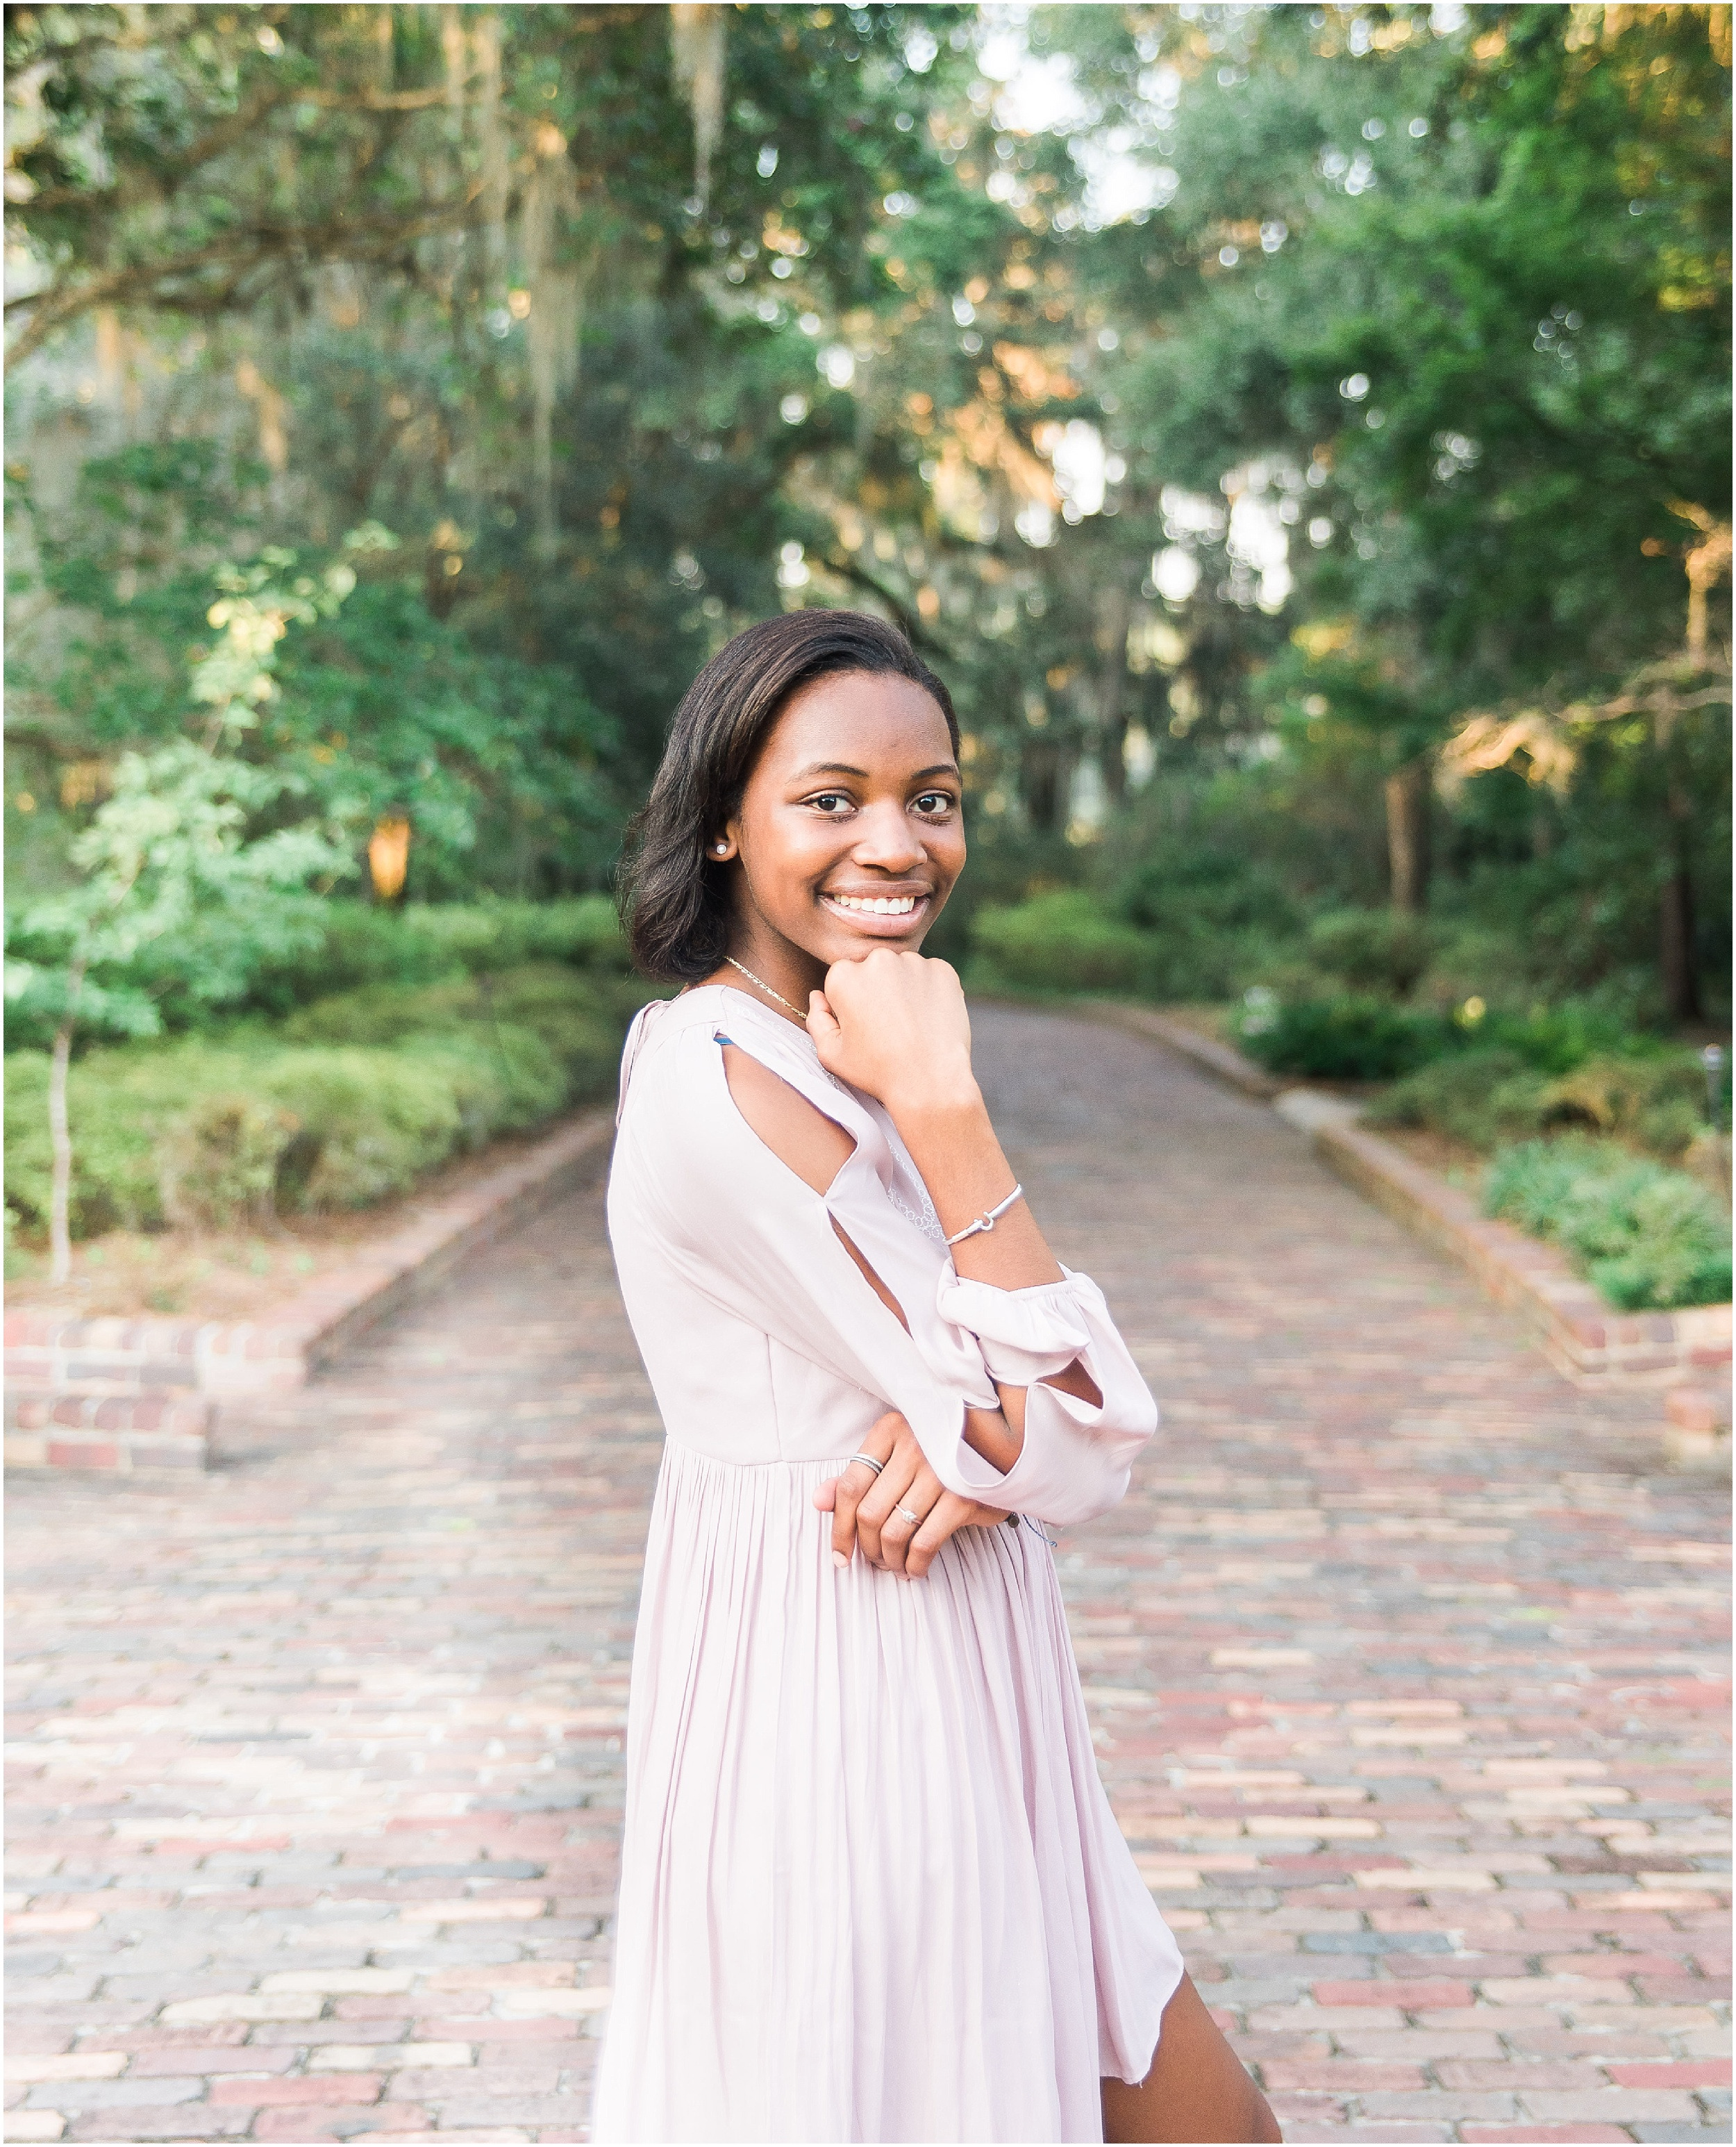 Tallahassee Florida Wedding & Senior Photographer, Brianna Senior Session at Maclay Gardens, Tallahassee Florida_0003.jpg